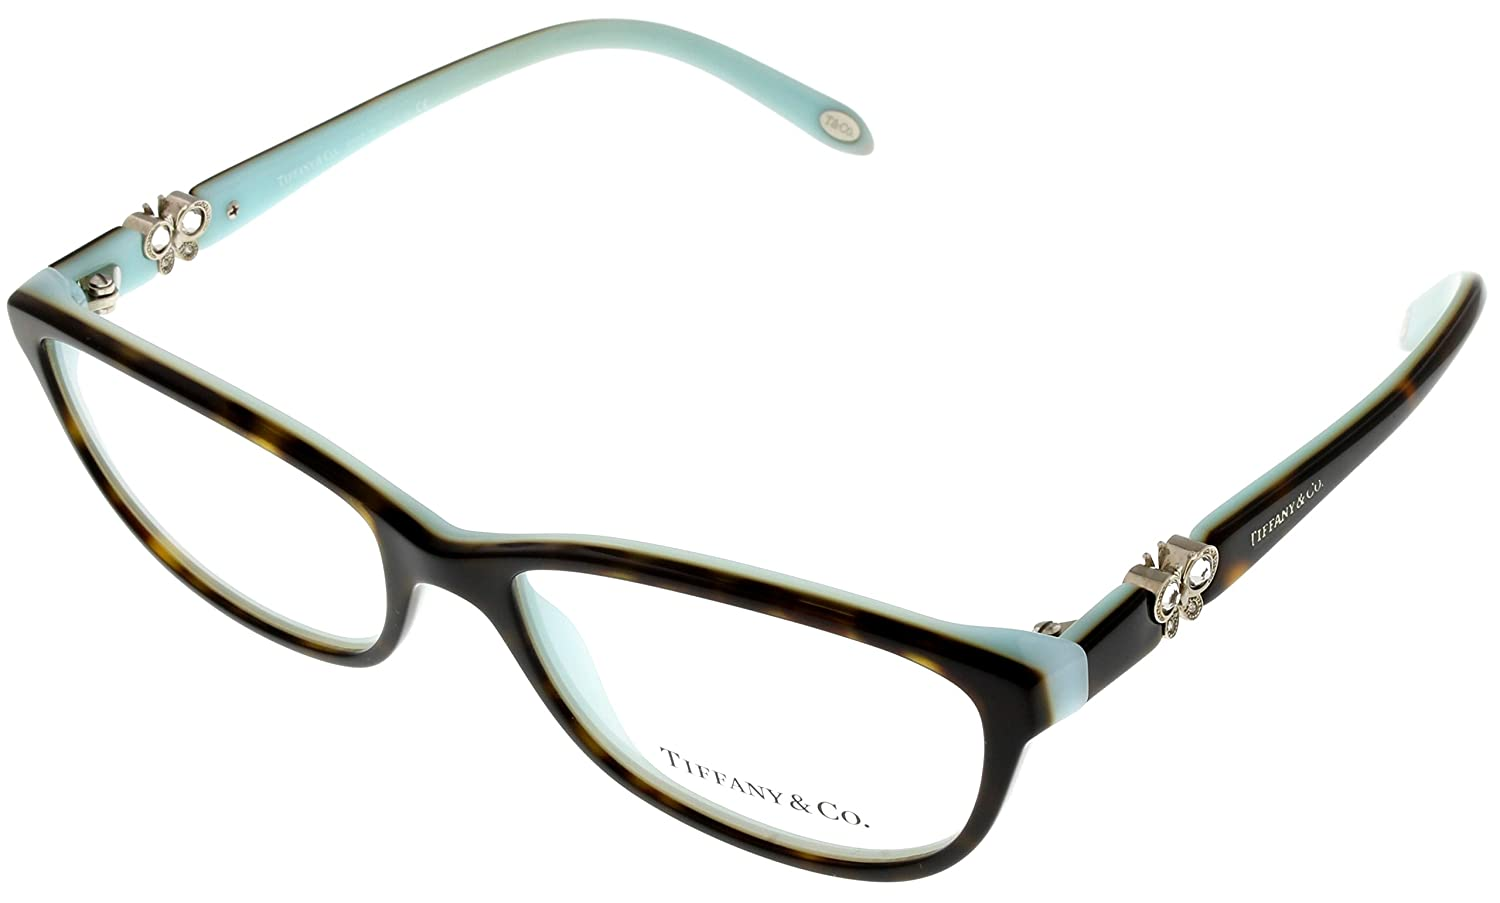 Amazon.com: Tiffany & Co. Prescription Eyeglasses Frame Women Havana ...